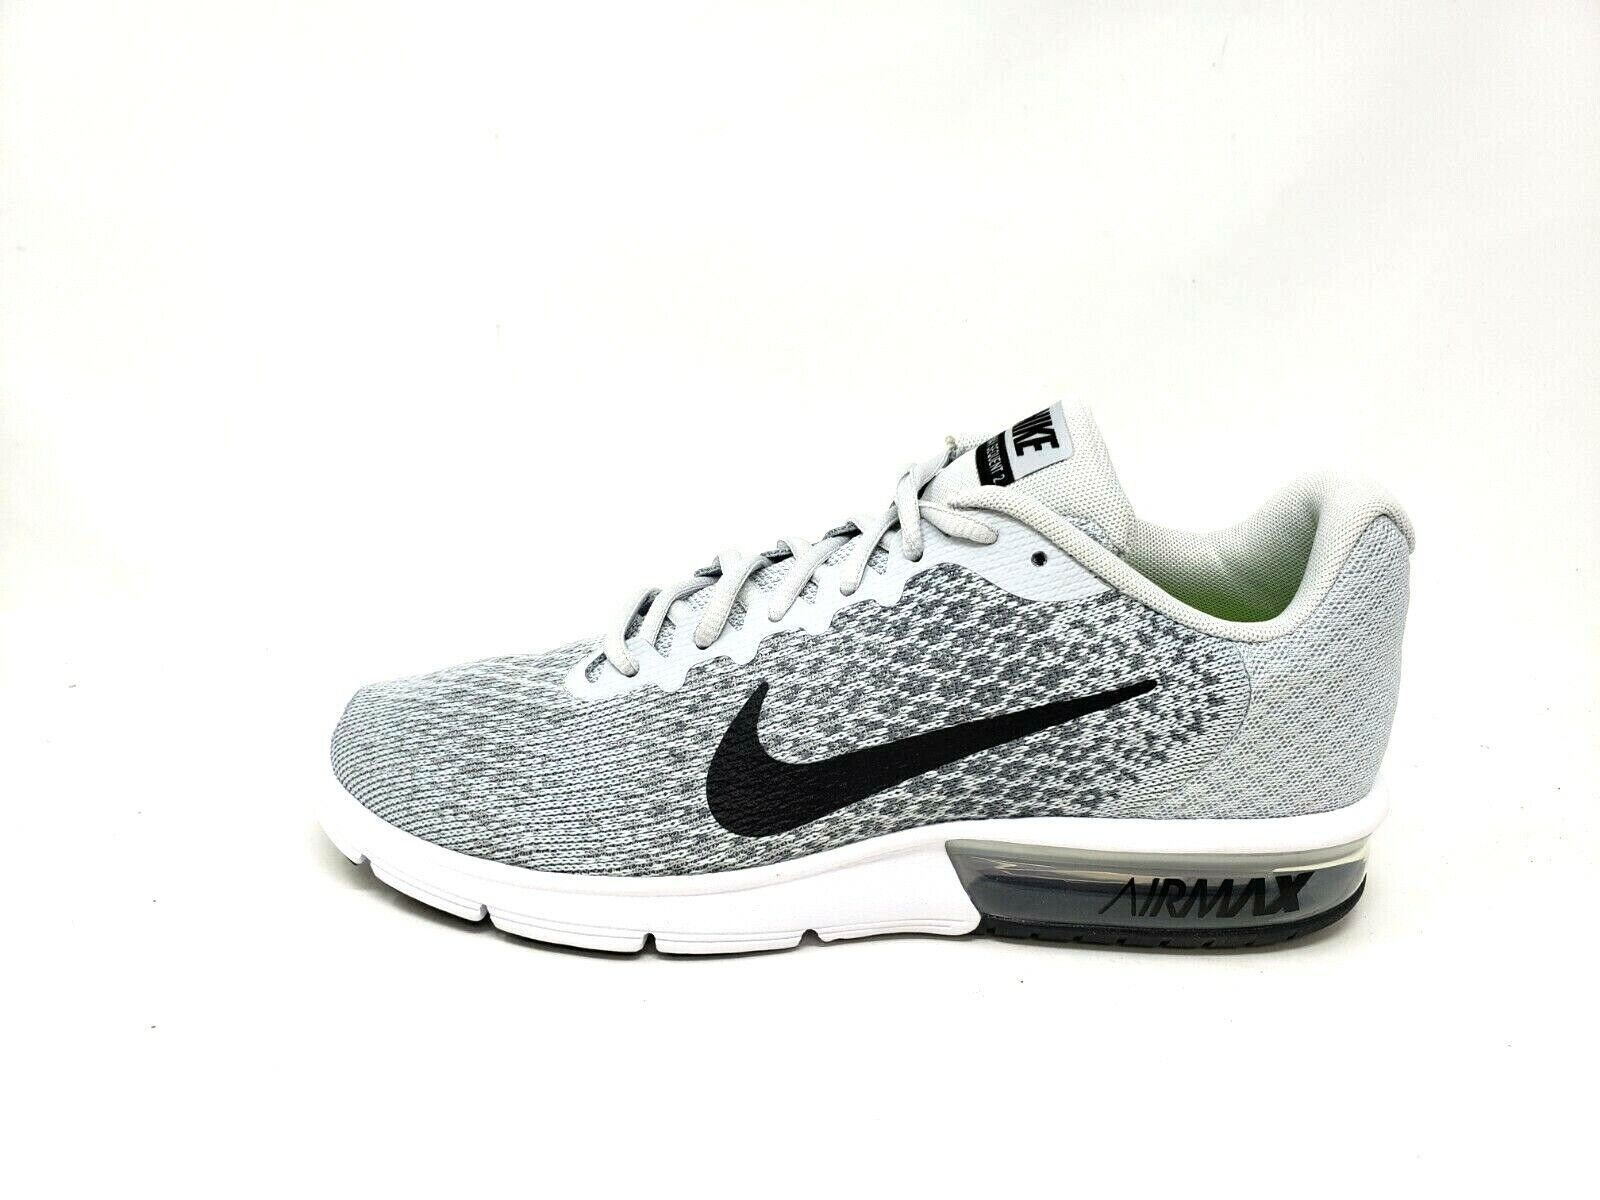 huge discount 7a931 2240a NEW Men s Air Max Sequent 2 Running shoes 852461-002 Grey Wht Blk 38P sm  NIKE oapmsk6957-Athletic Shoes